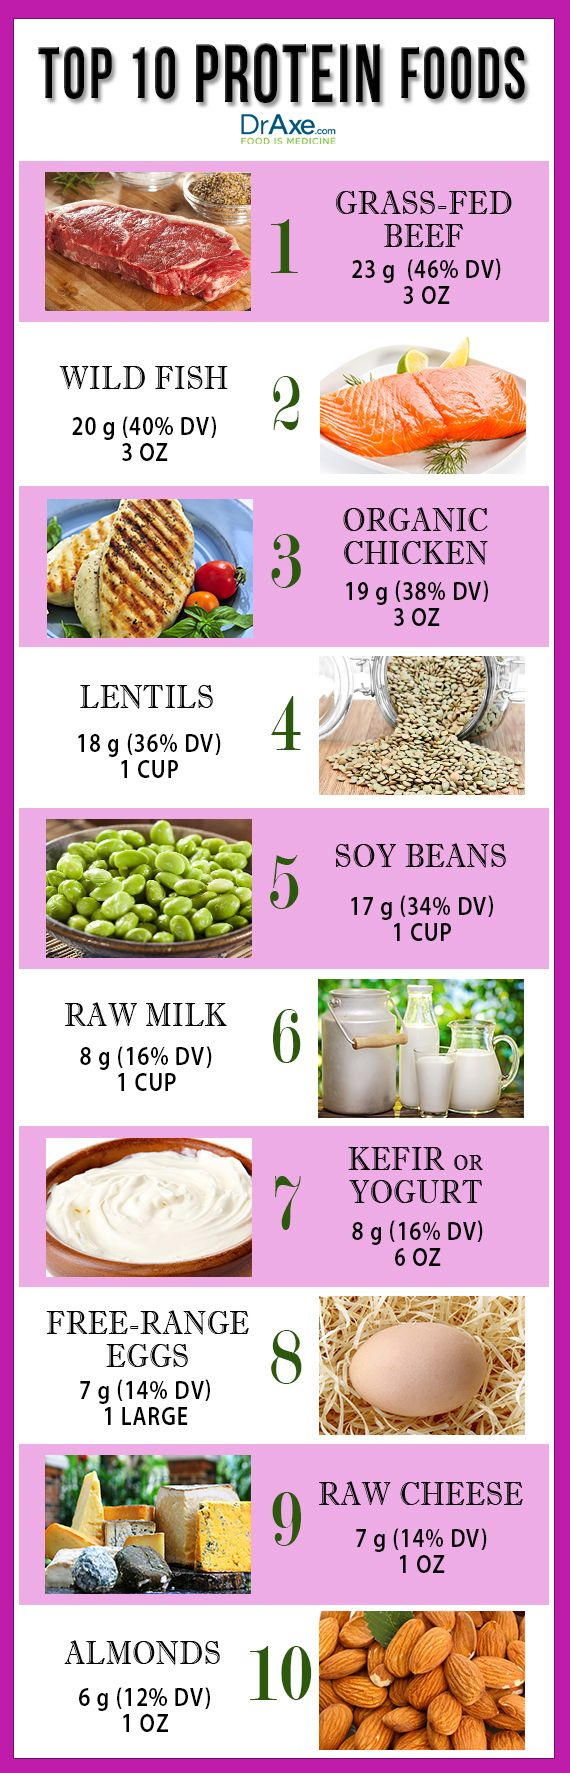 Top 10 High Protein Foods - DrAxe.com - http://draxe.com/top-10-high-protein-foods/